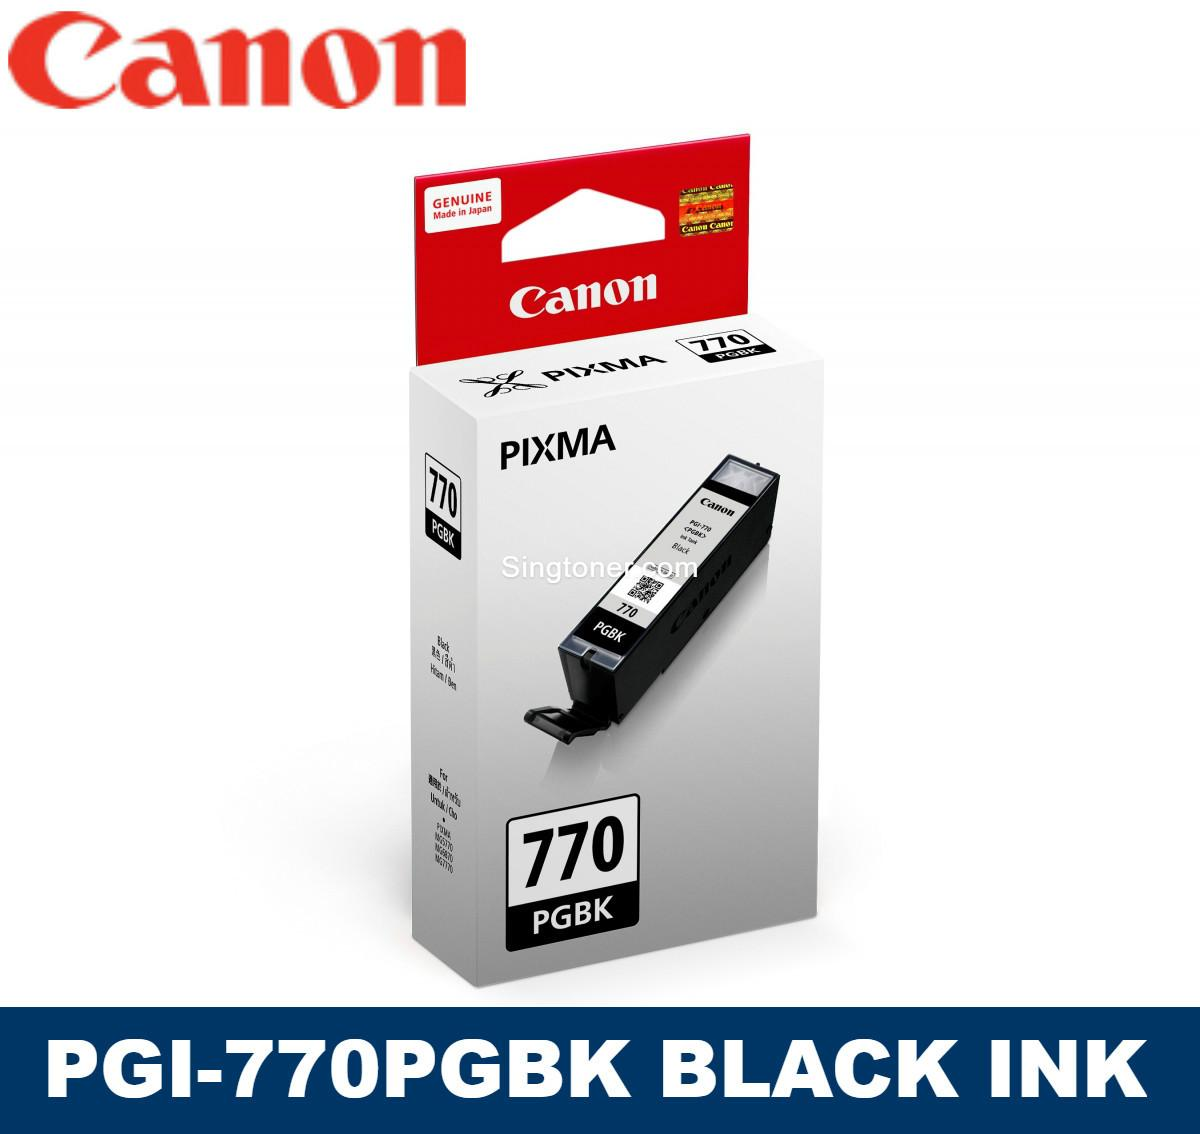 Printers Accessories Buy At Best Price In Ready Cartridge Canon 810 Black Ori Singapore